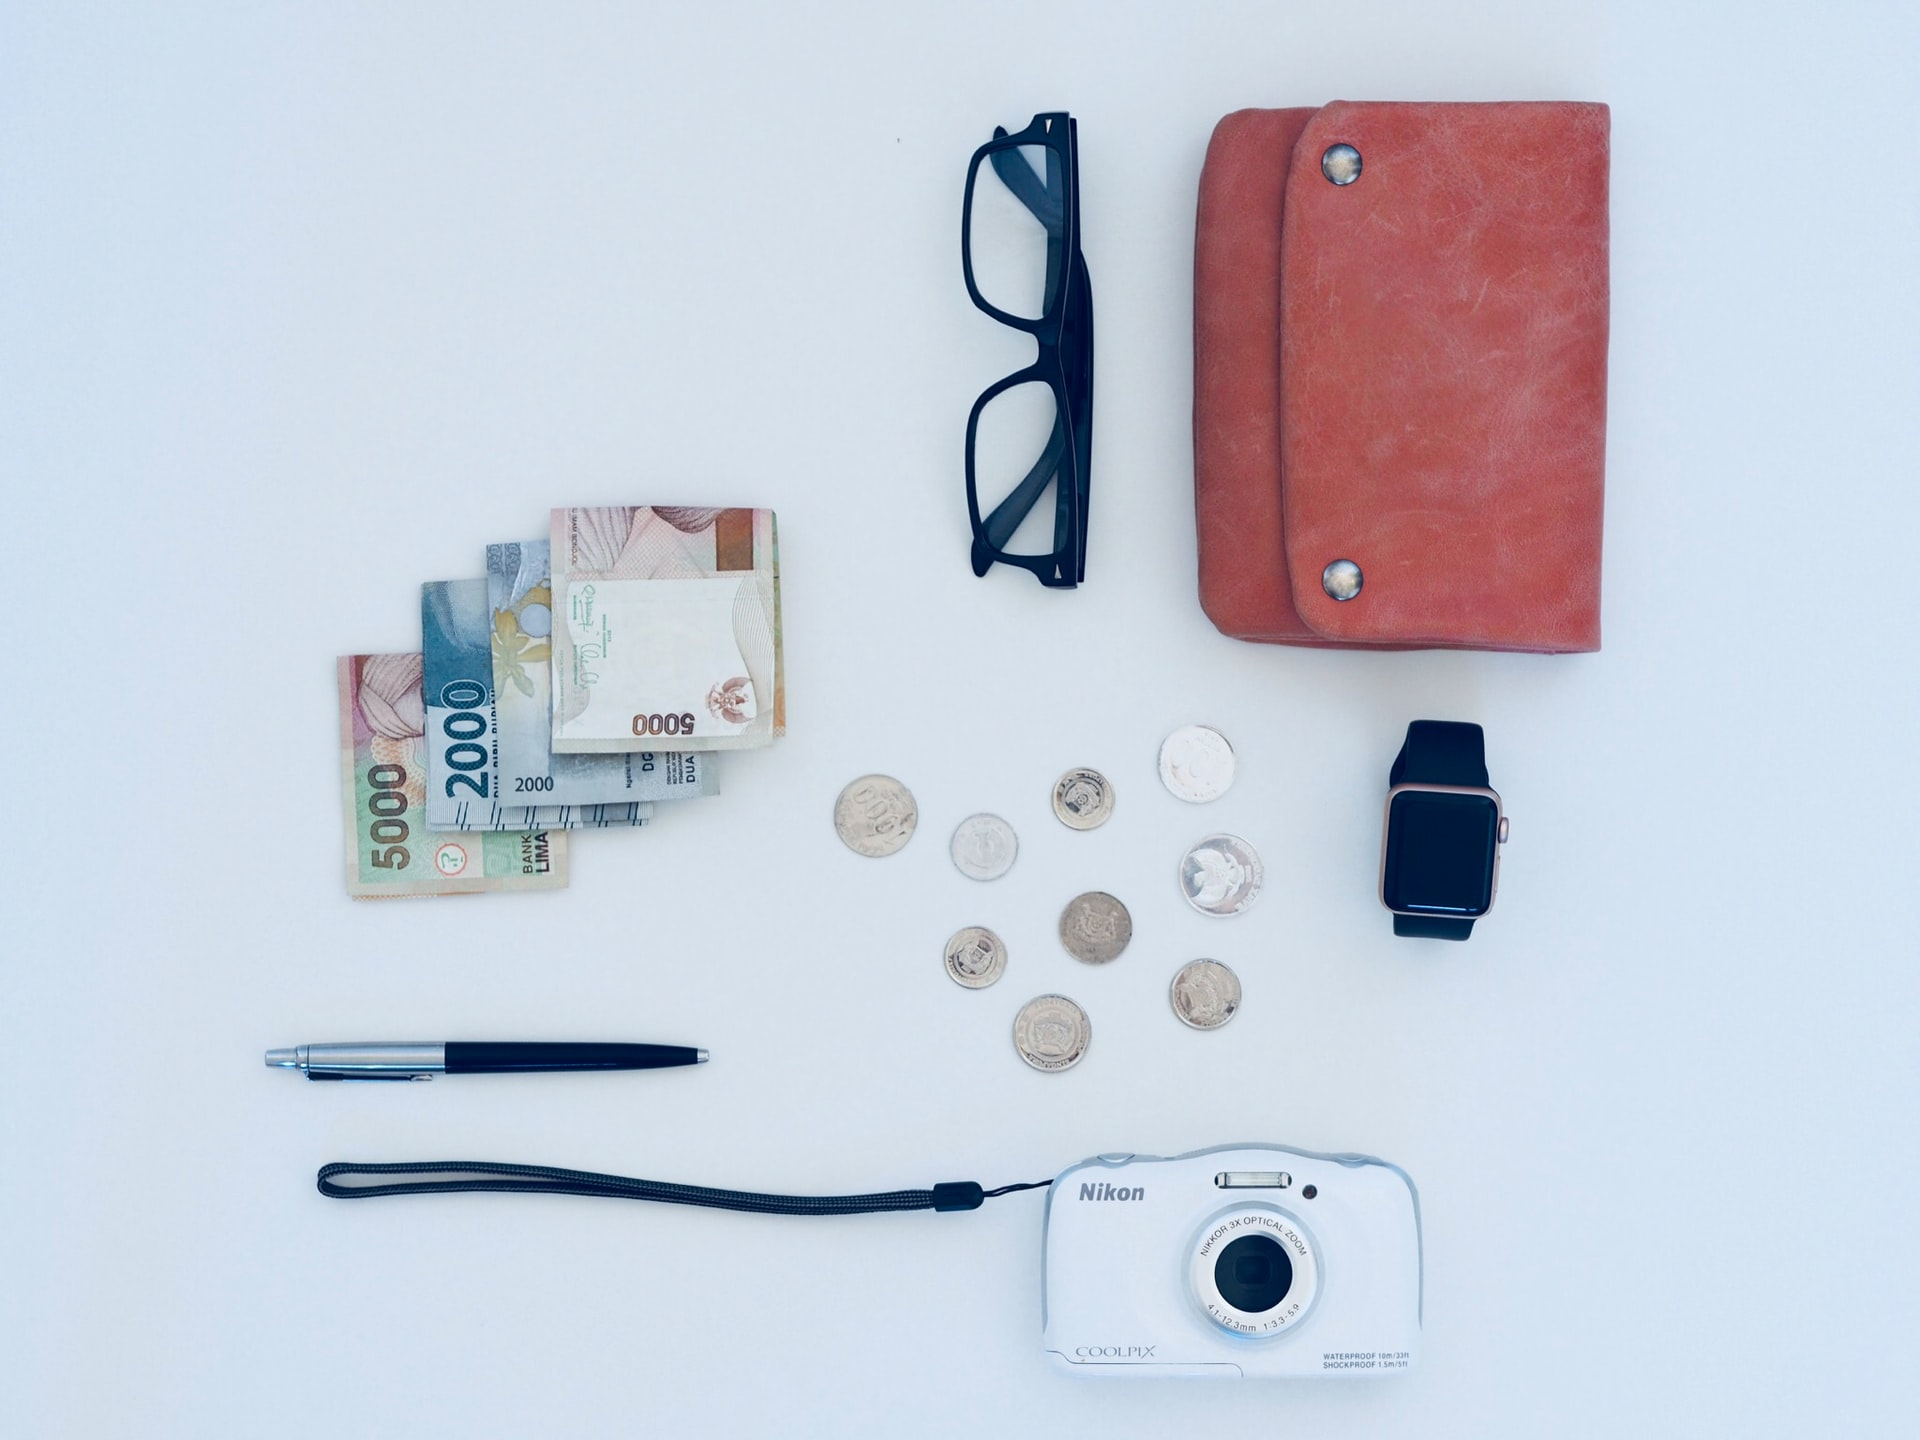 This image shows a white surface with a pair of glasses, money, a camera, coins, a watch, a purse and a pen on.